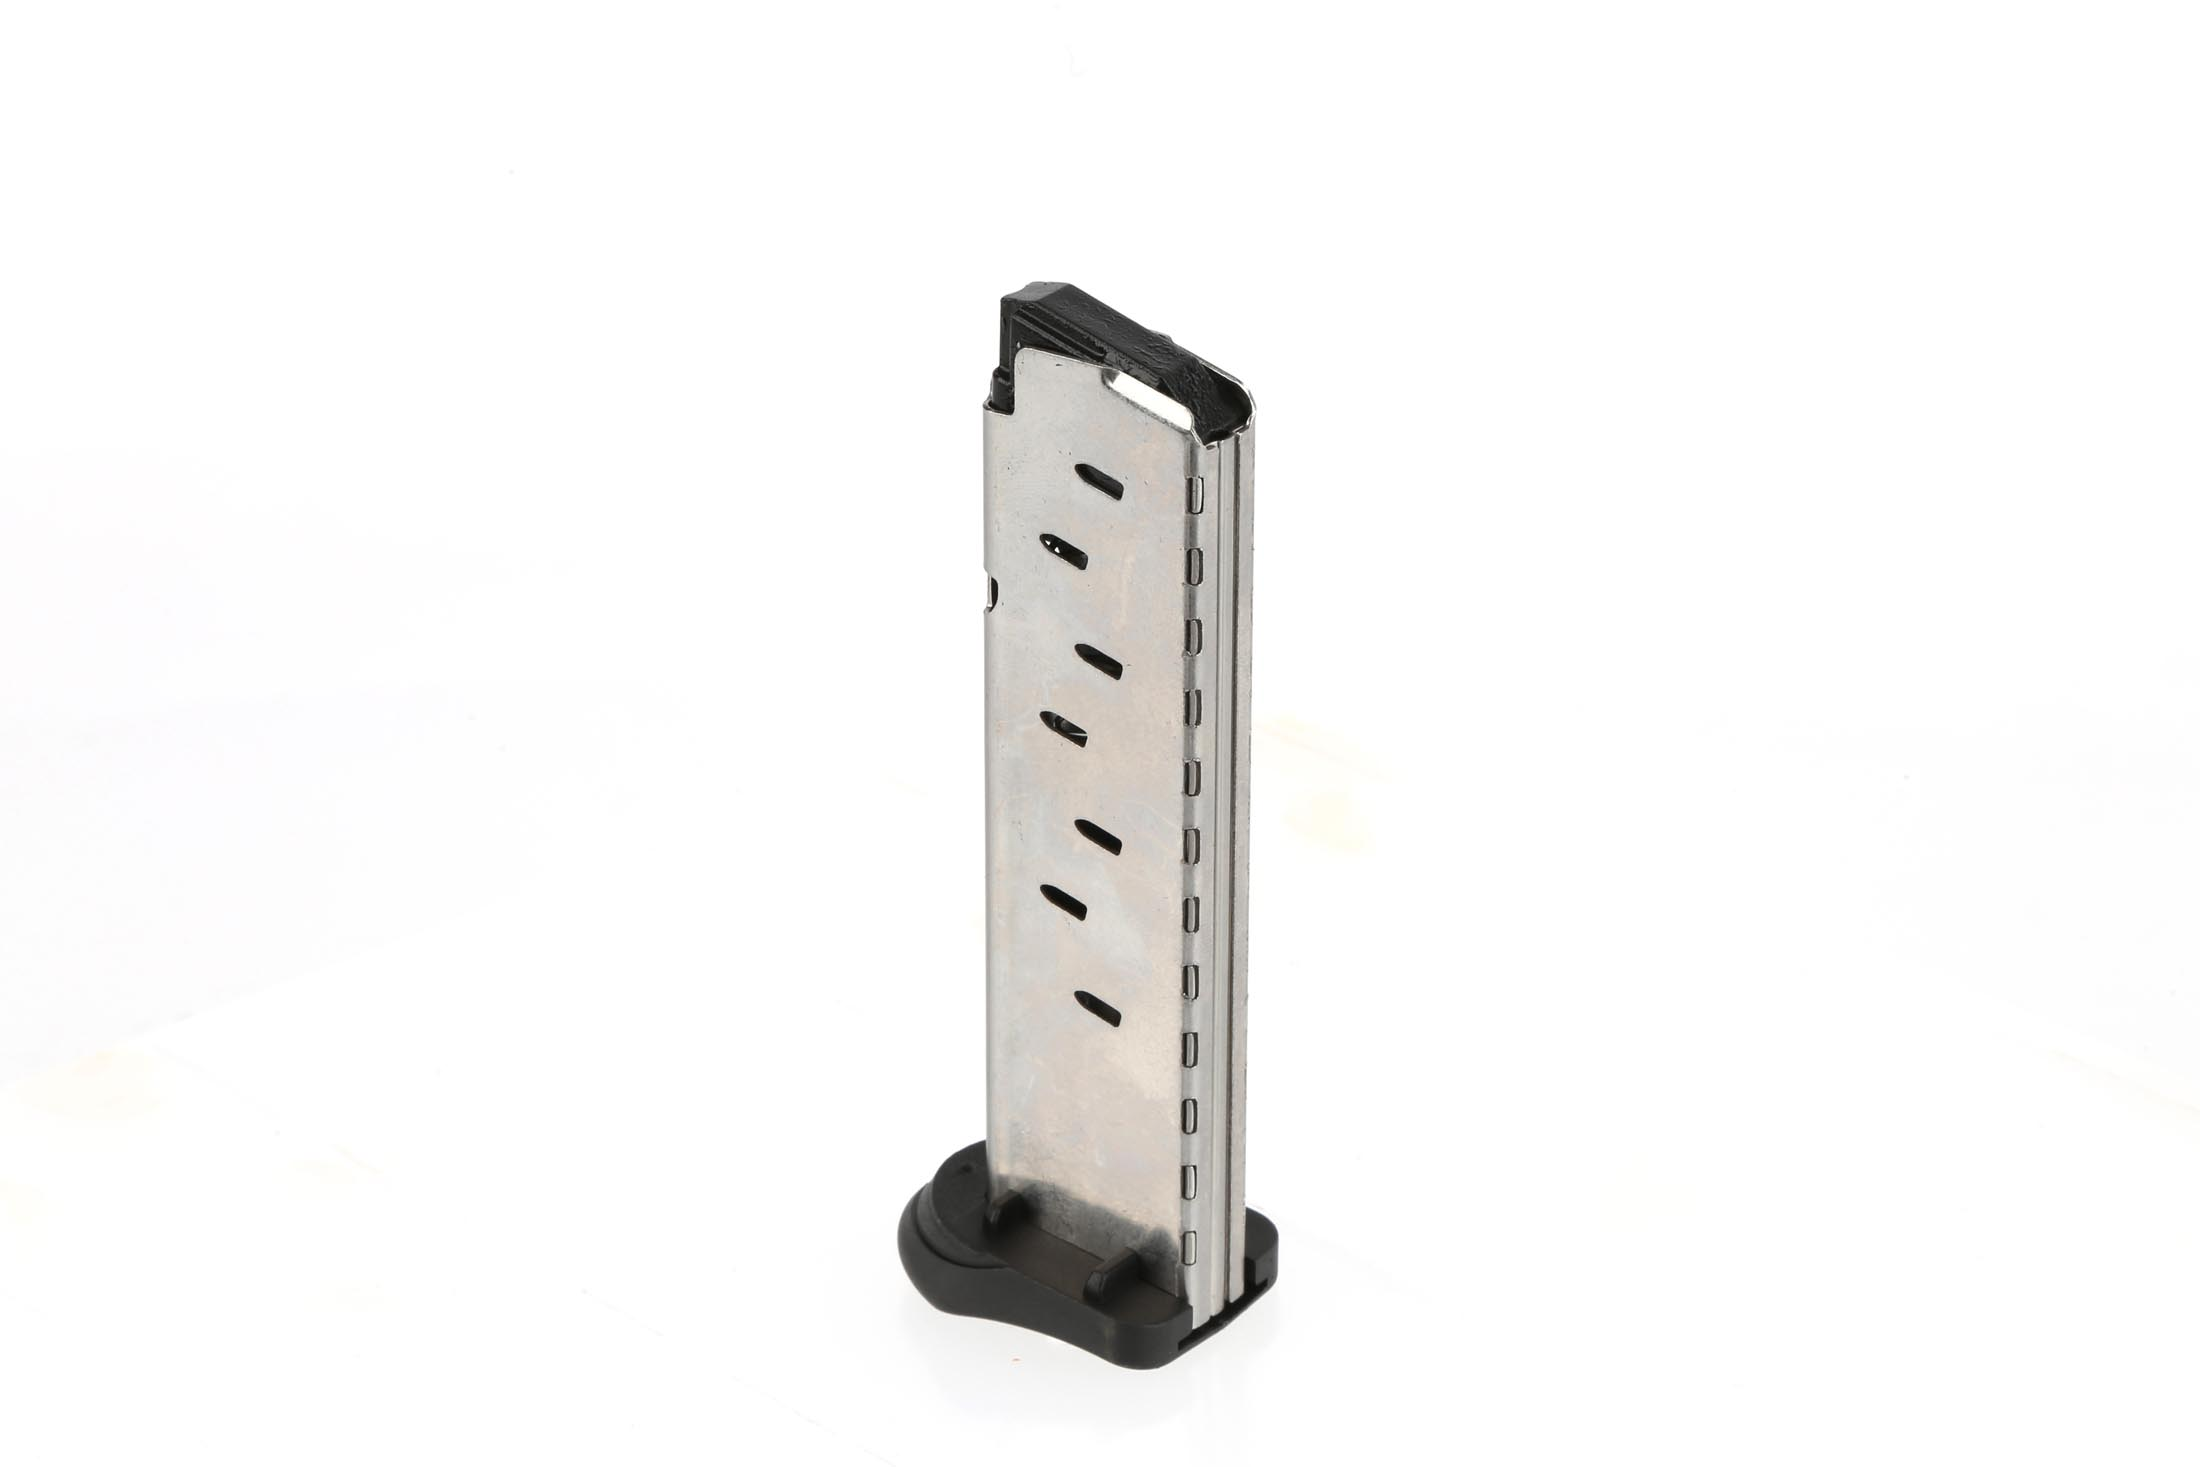 Walther Pk380 Magazine 380 Acp 8 Rounds 505600